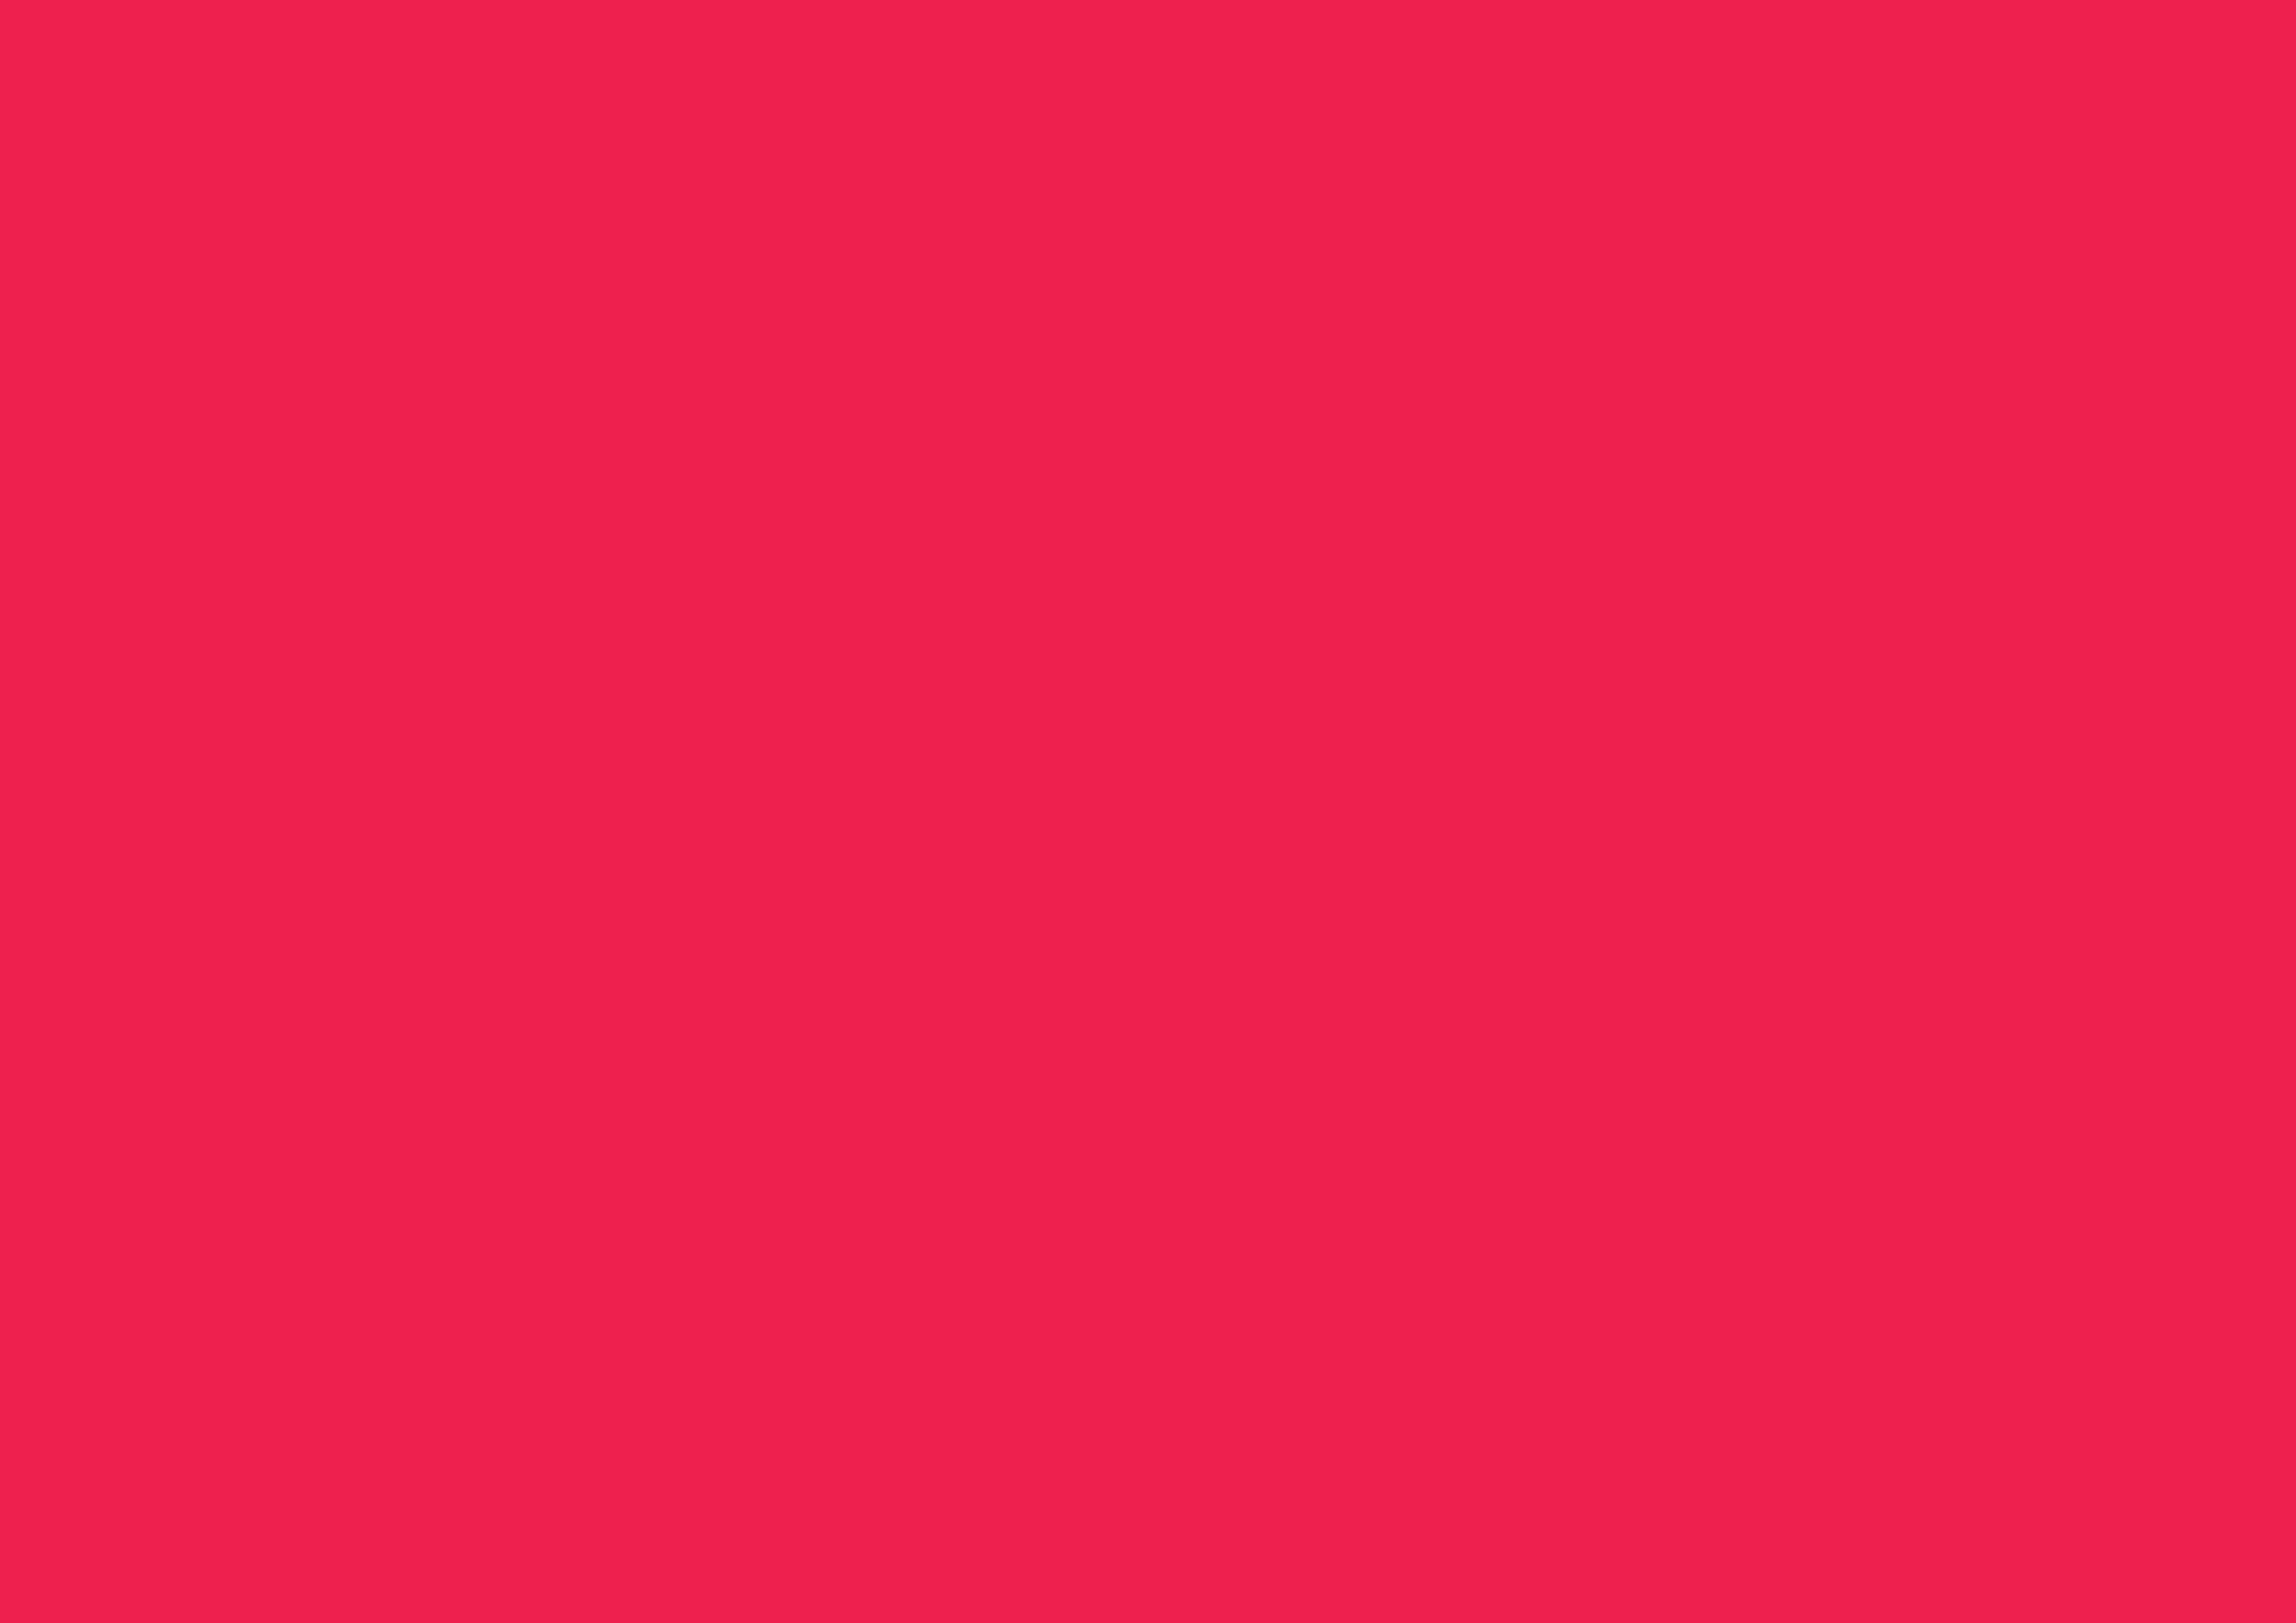 3508x2480 Red Crayola Solid Color Background